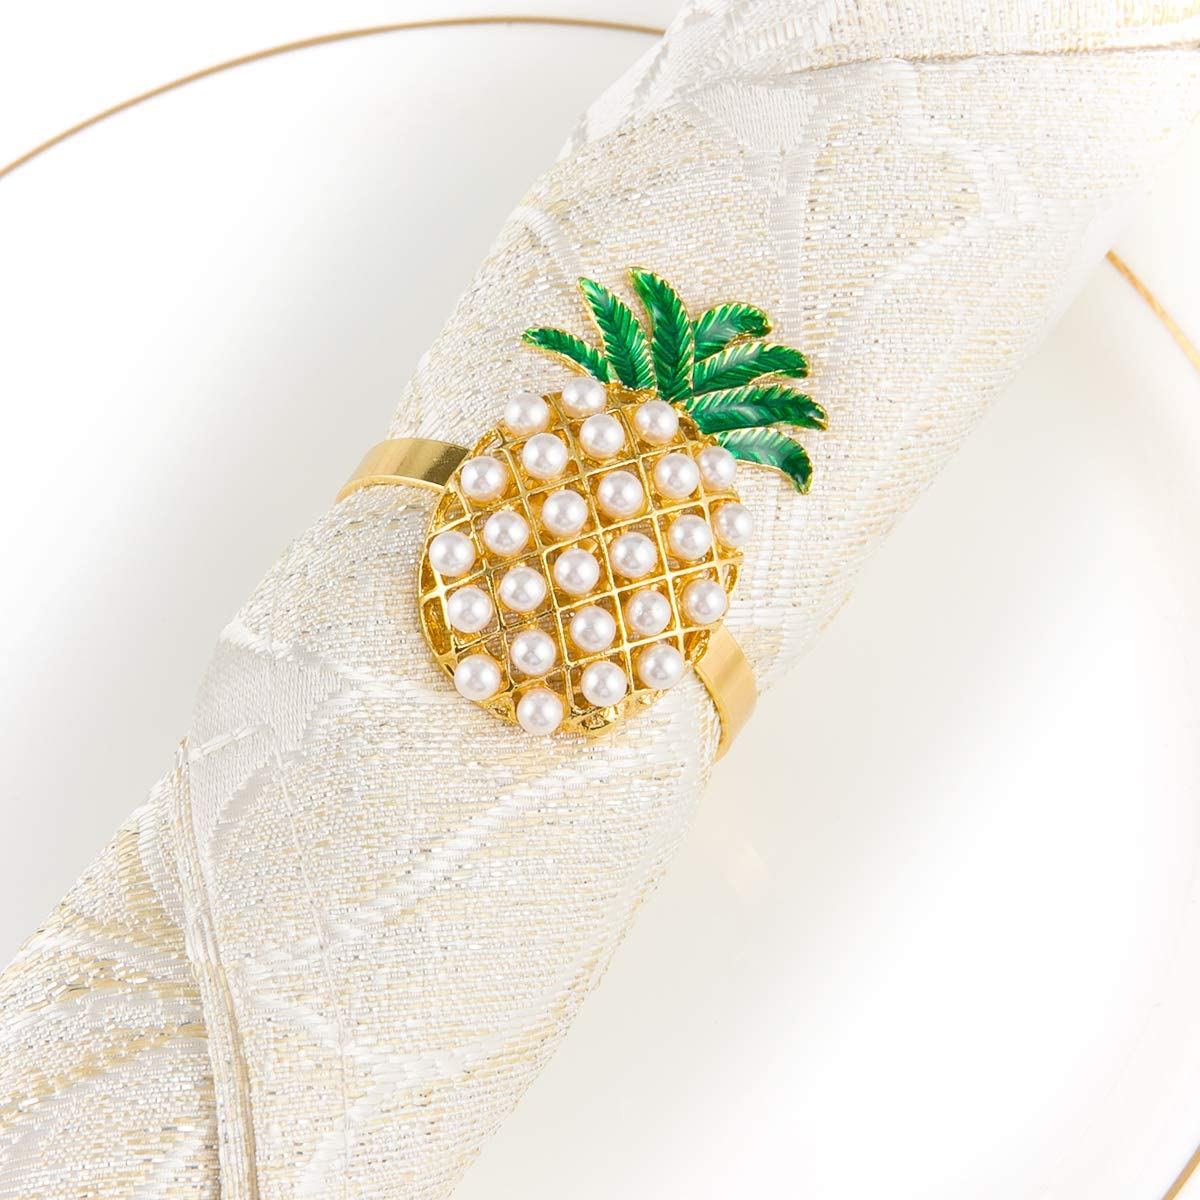 Alphatool Set of 6 Golden Pineapple Napkin Rings- Golden Pineapple Shaped Napkin Holder Rings Full of Pearls for Summer Holiday Hawaiian Theme Party Banquet Dinning Table Settings Decoration Gift